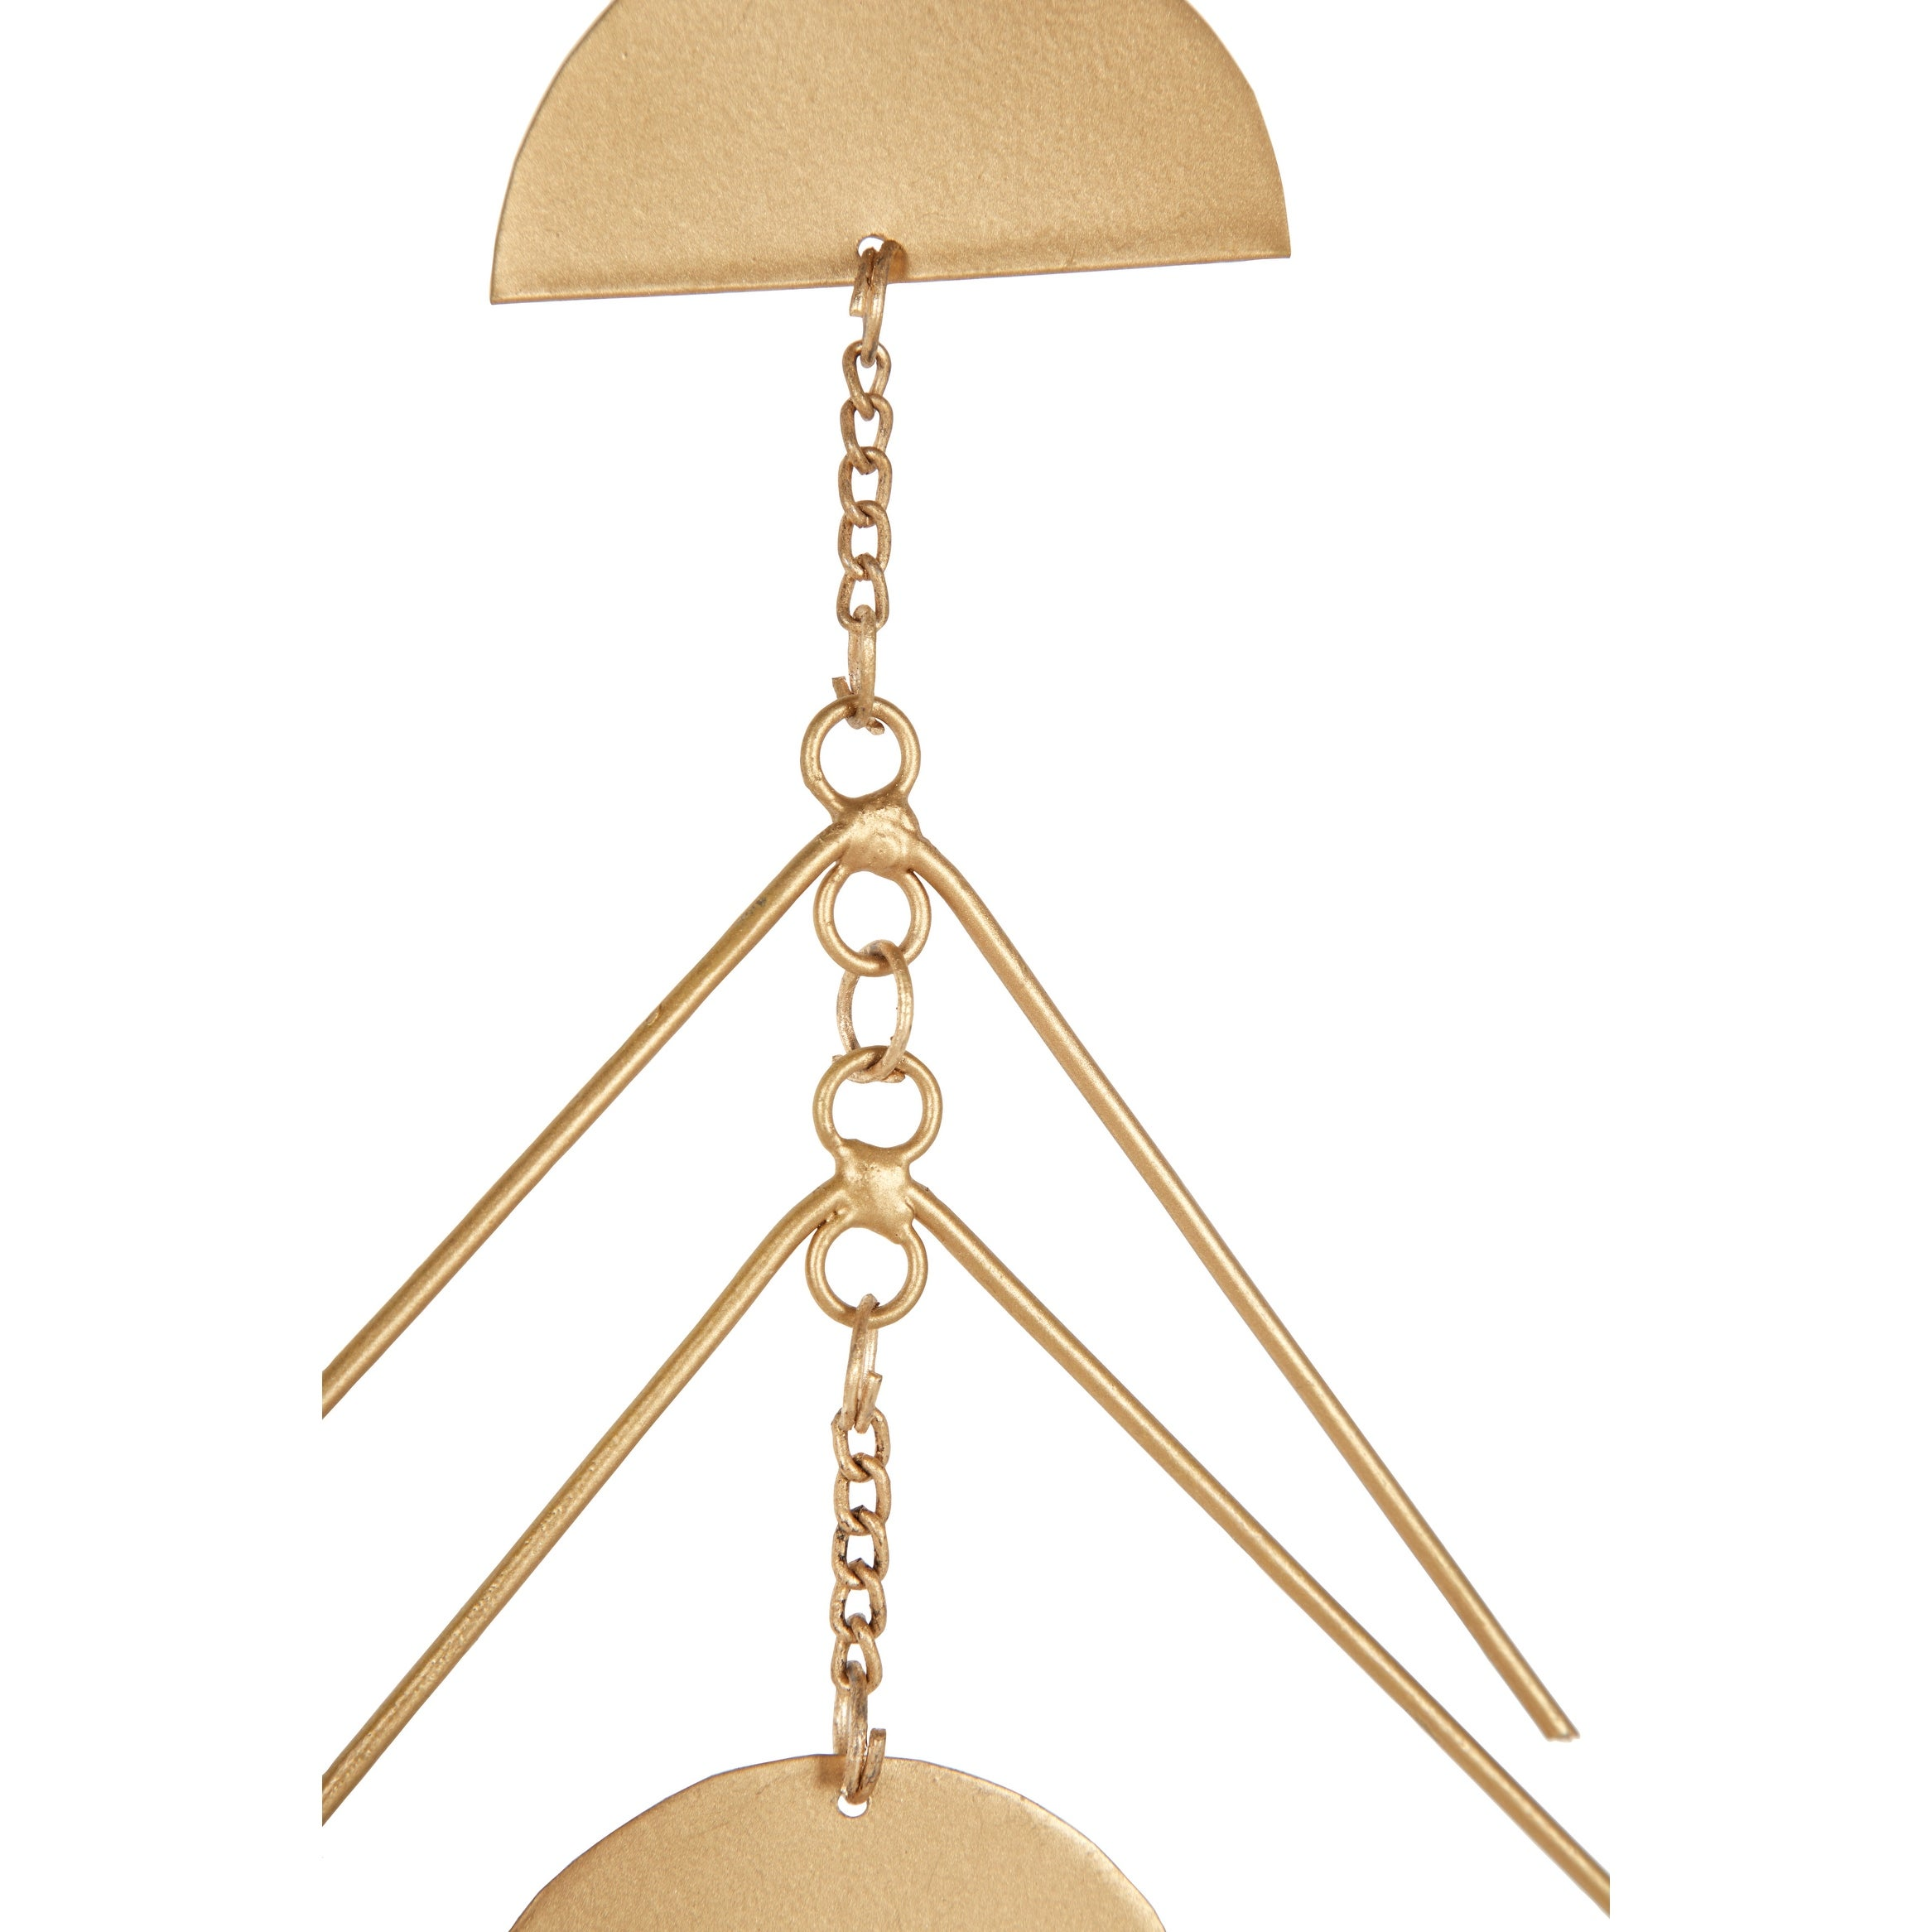 Set Of 2 Large Celestial And Geometric Shape Gold Metal Wind Chime Overstock 32168281